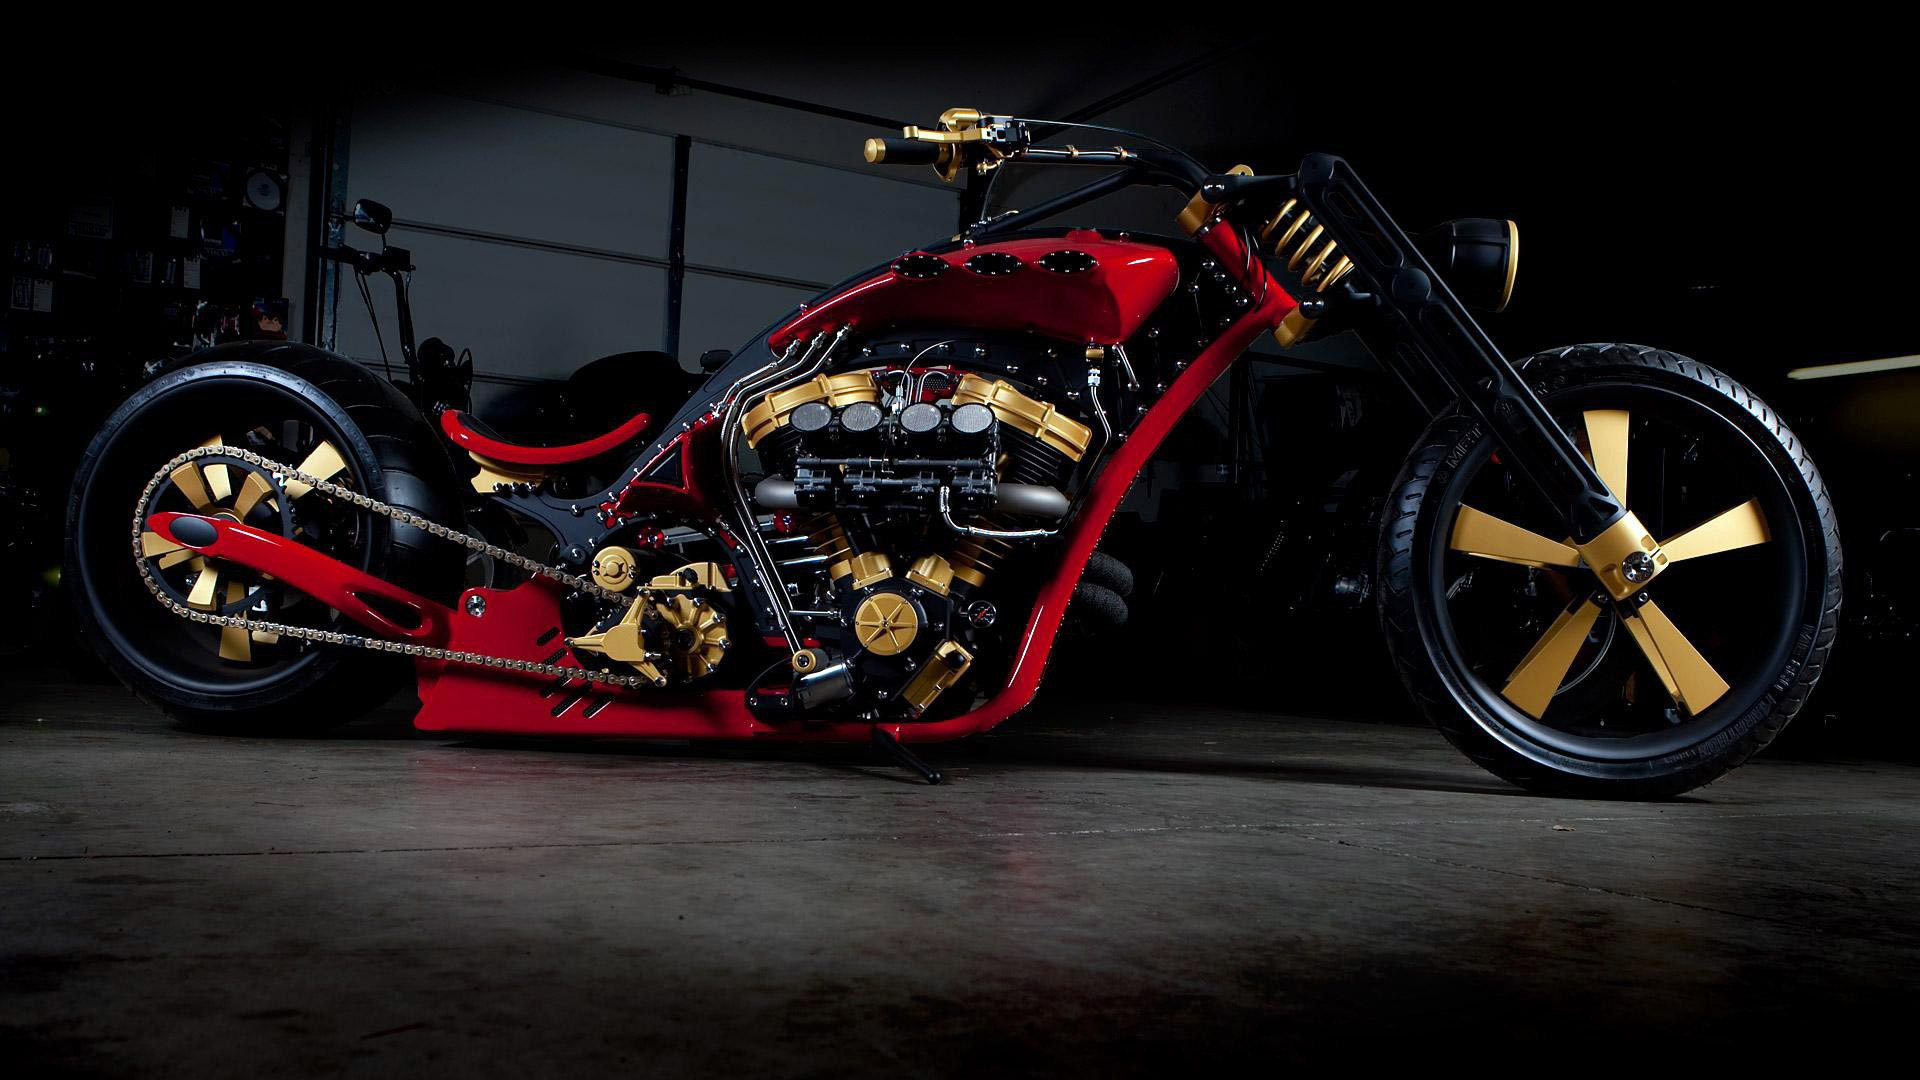 Chopper Motorcycles Wallpaper Wallpapers At HDBikeWallpaperscom